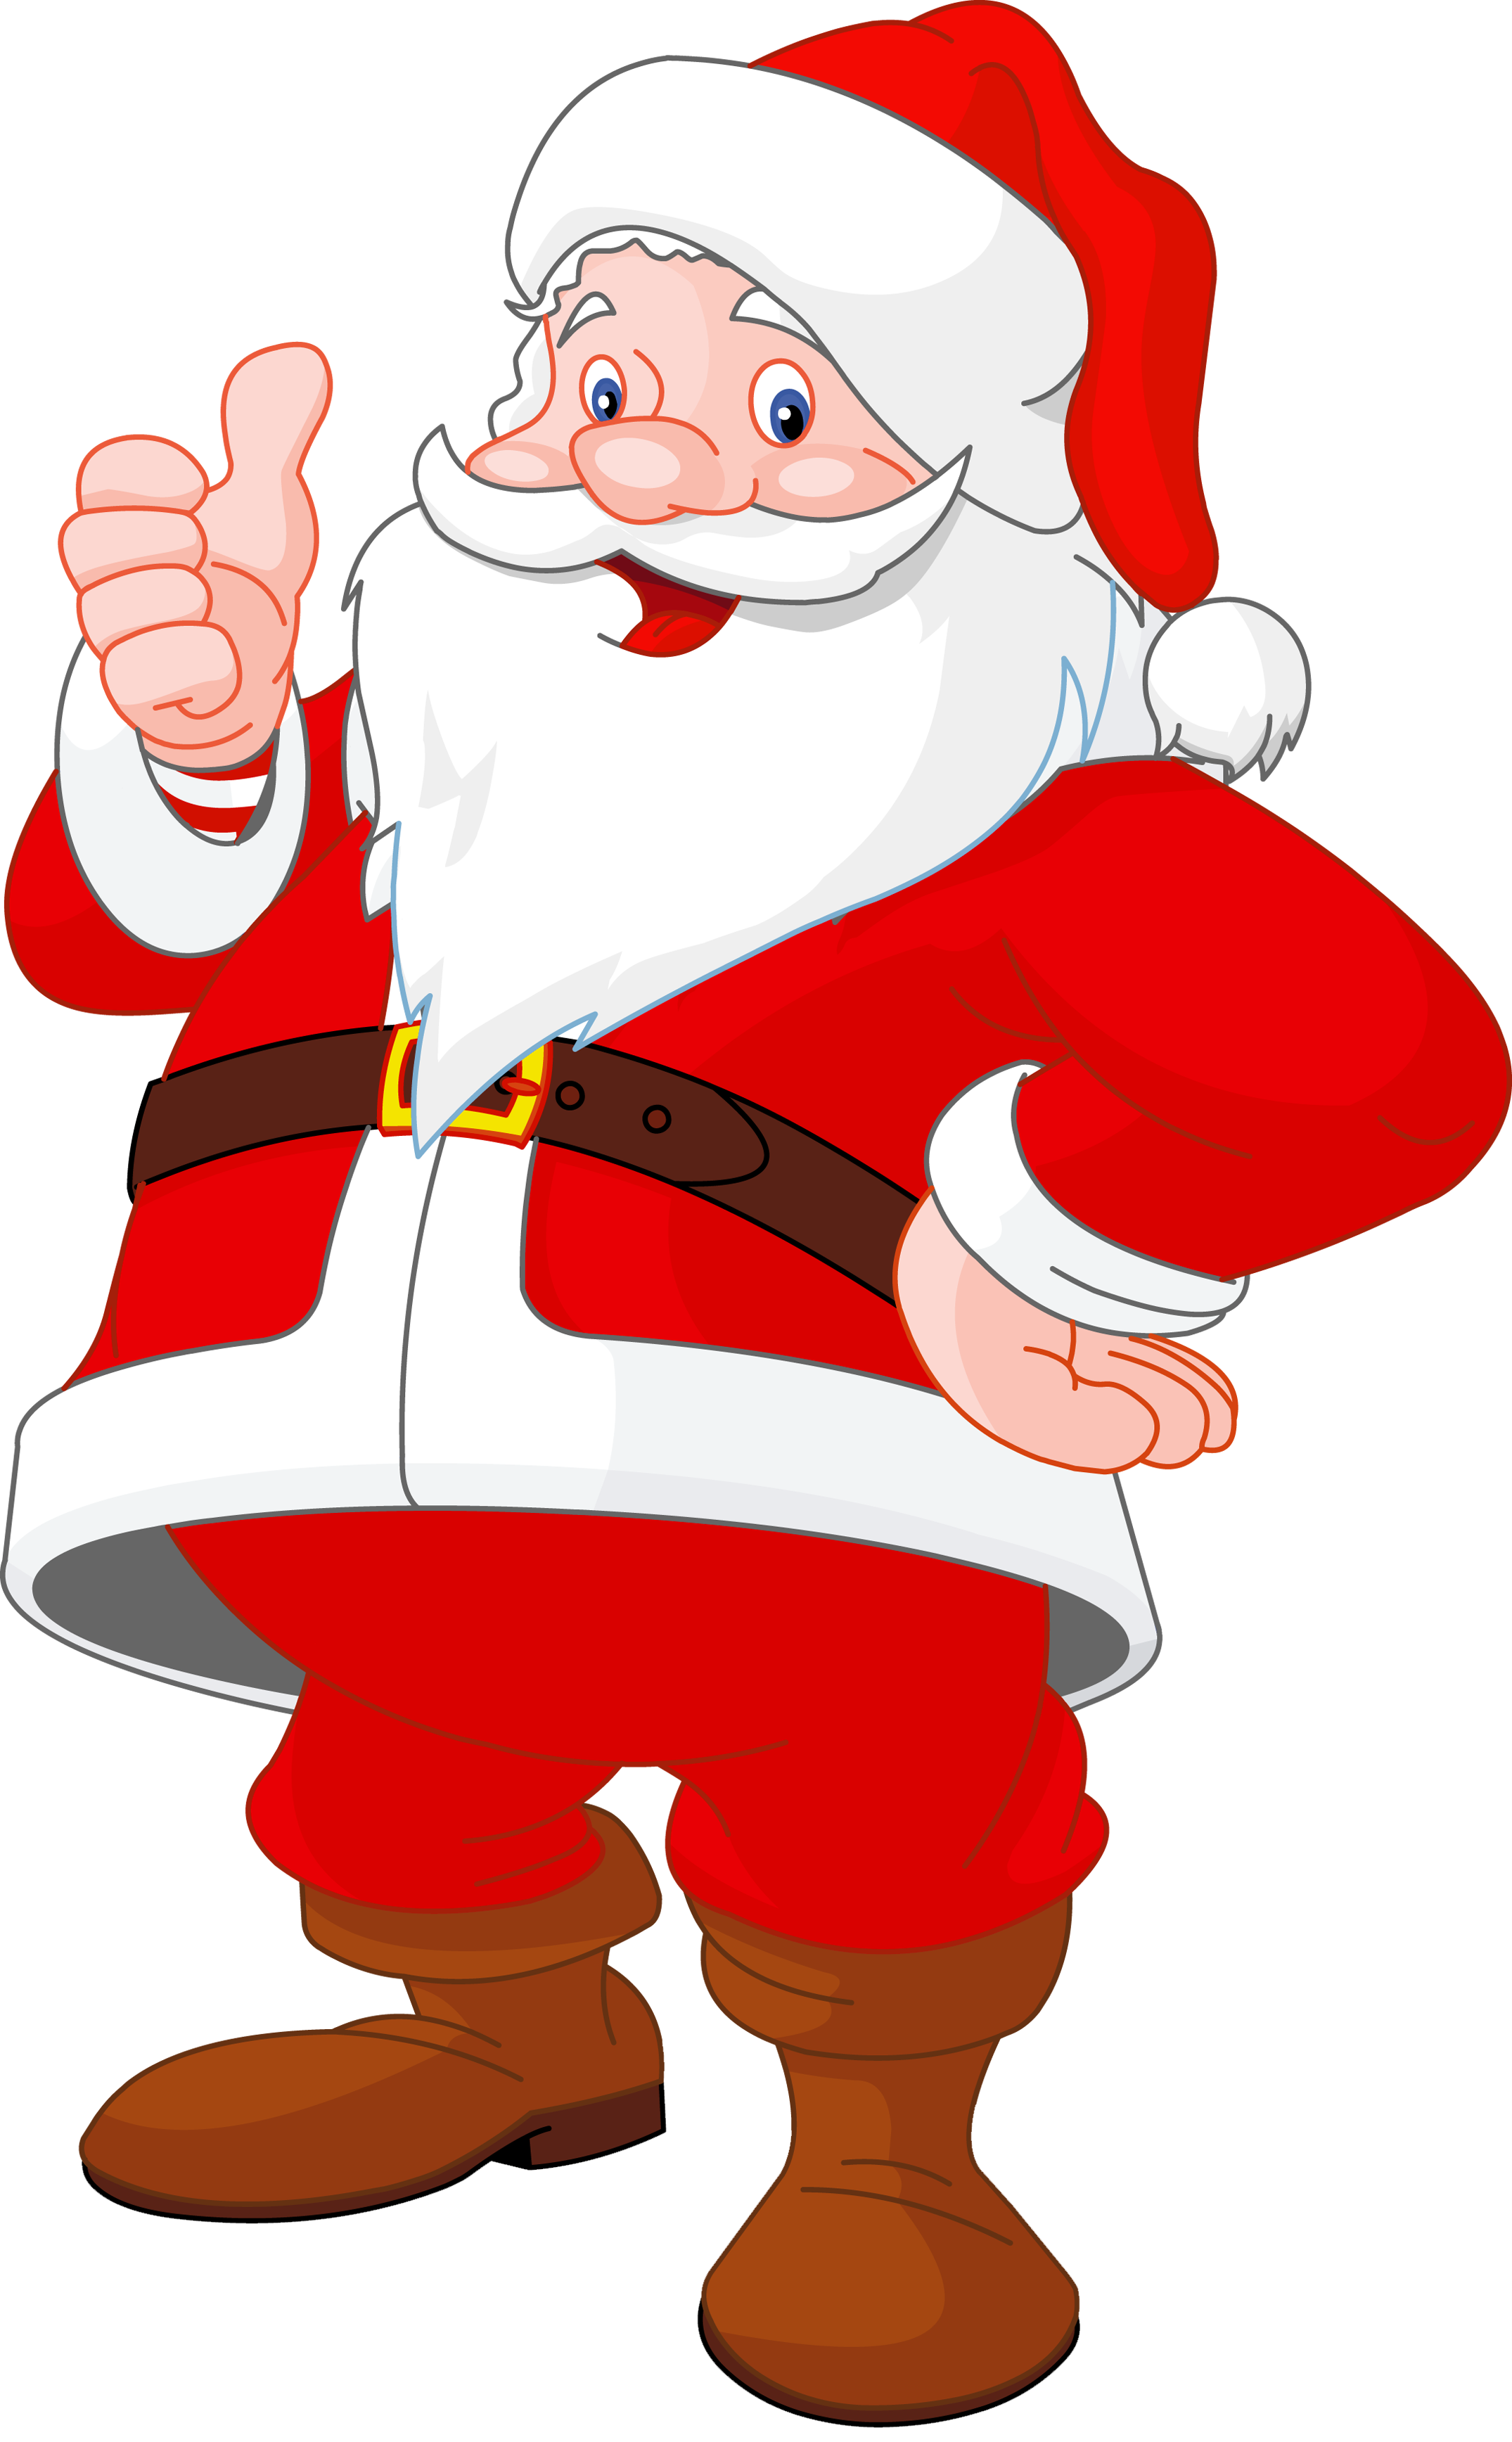 cute santa claus drawing free image https creativecommons org licenses by nc nd 4 0